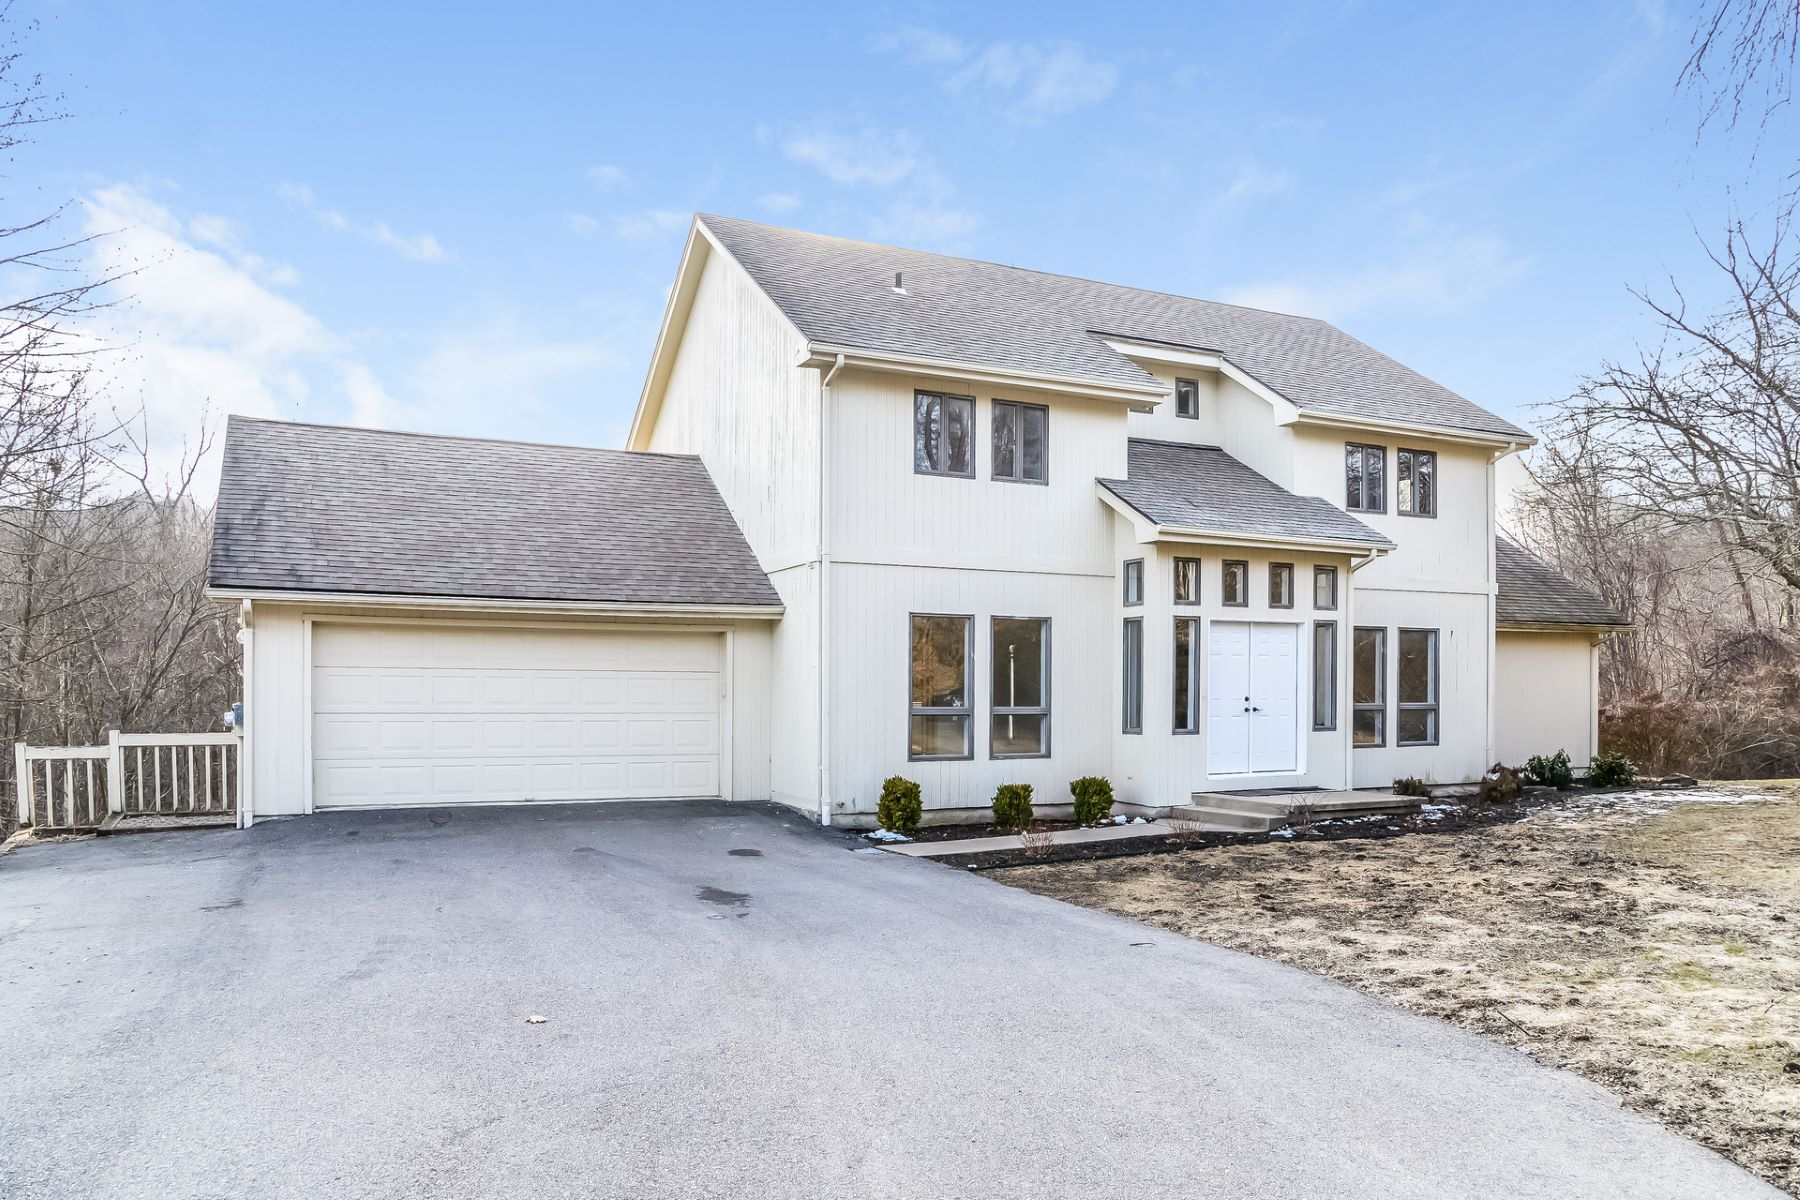 Single Family Homes for Sale at Capturing Modern Taste 18 Pond Edge Drive Waterford, Connecticut 06385 United States